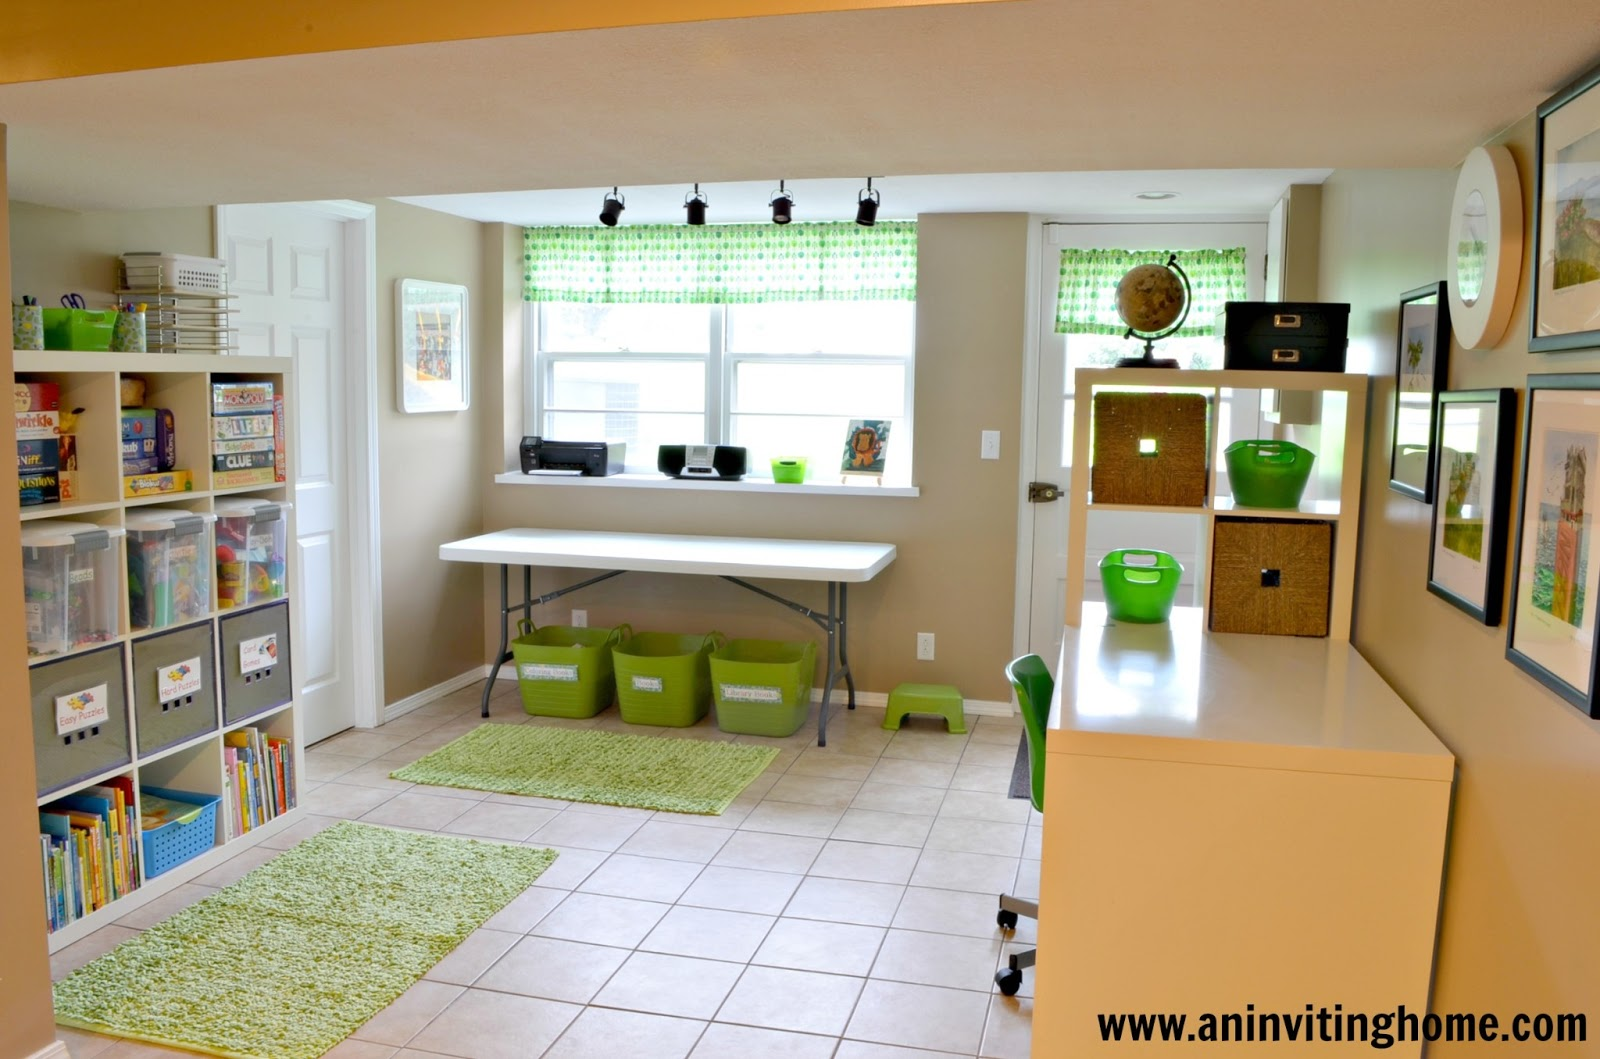 An Inviting Home: Safety Is Key When Designing Kid Spaces & A